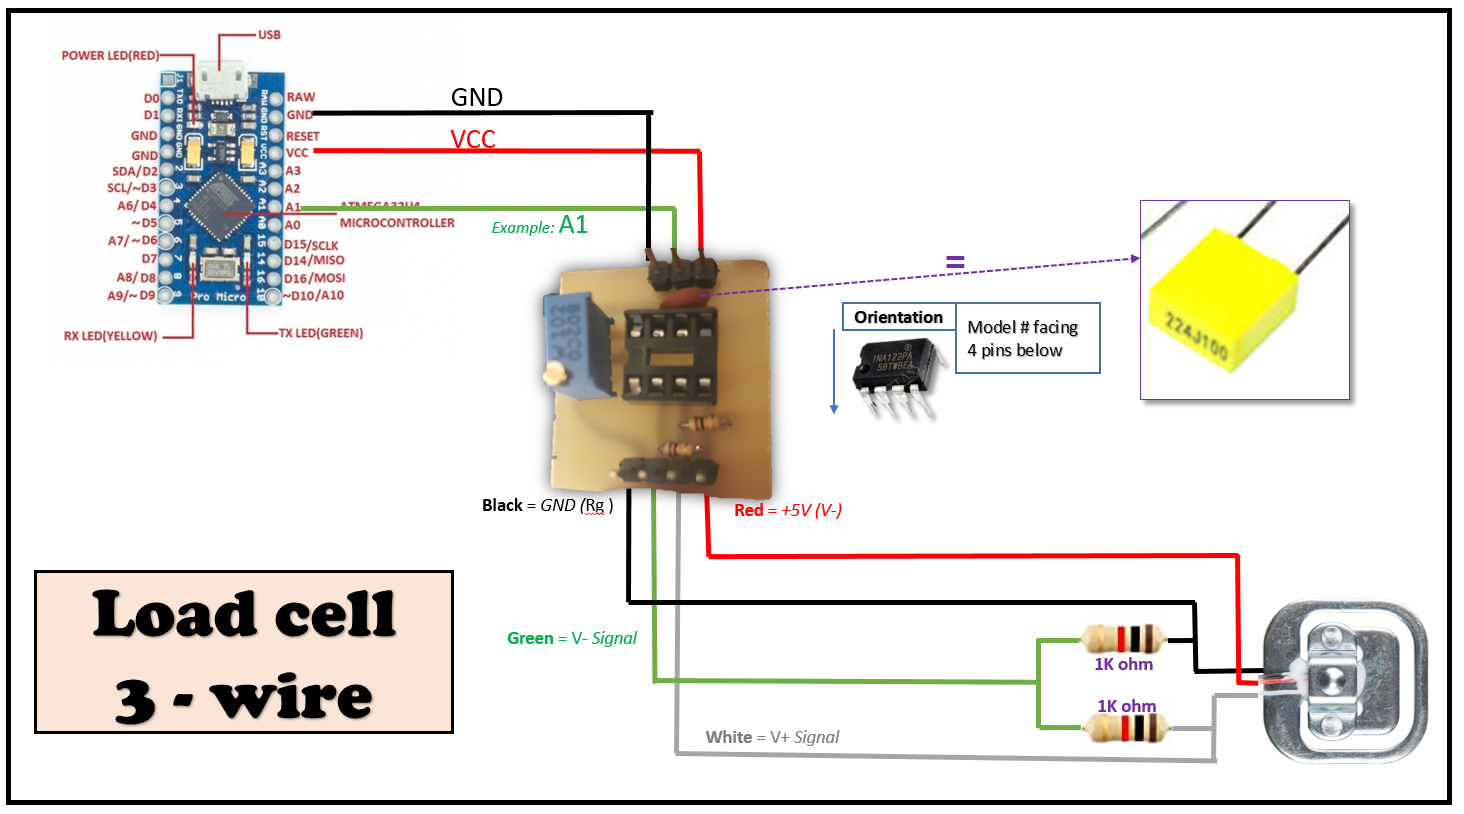 cteters - 3 cell + amp + Arduino.png